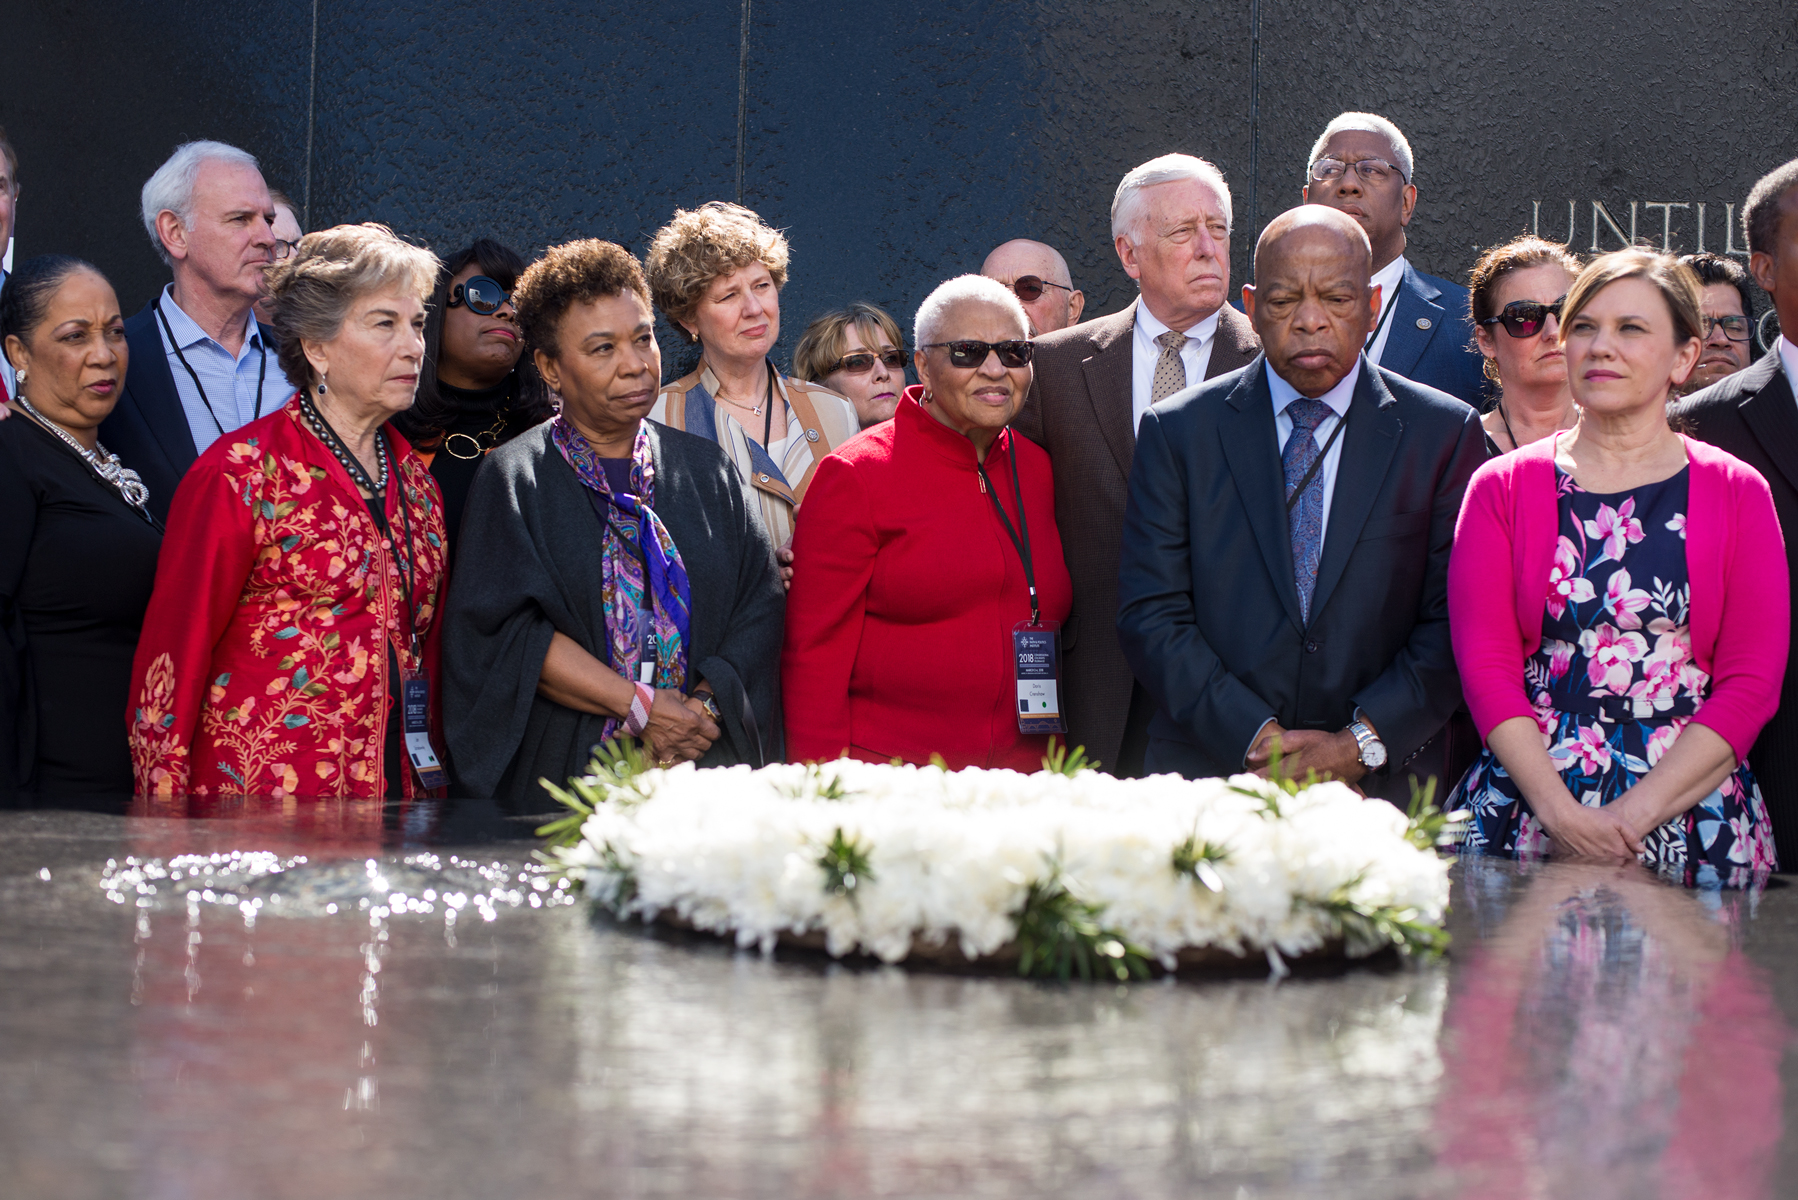 Congressional Civil Rights Leaders Gather At Civil Rights